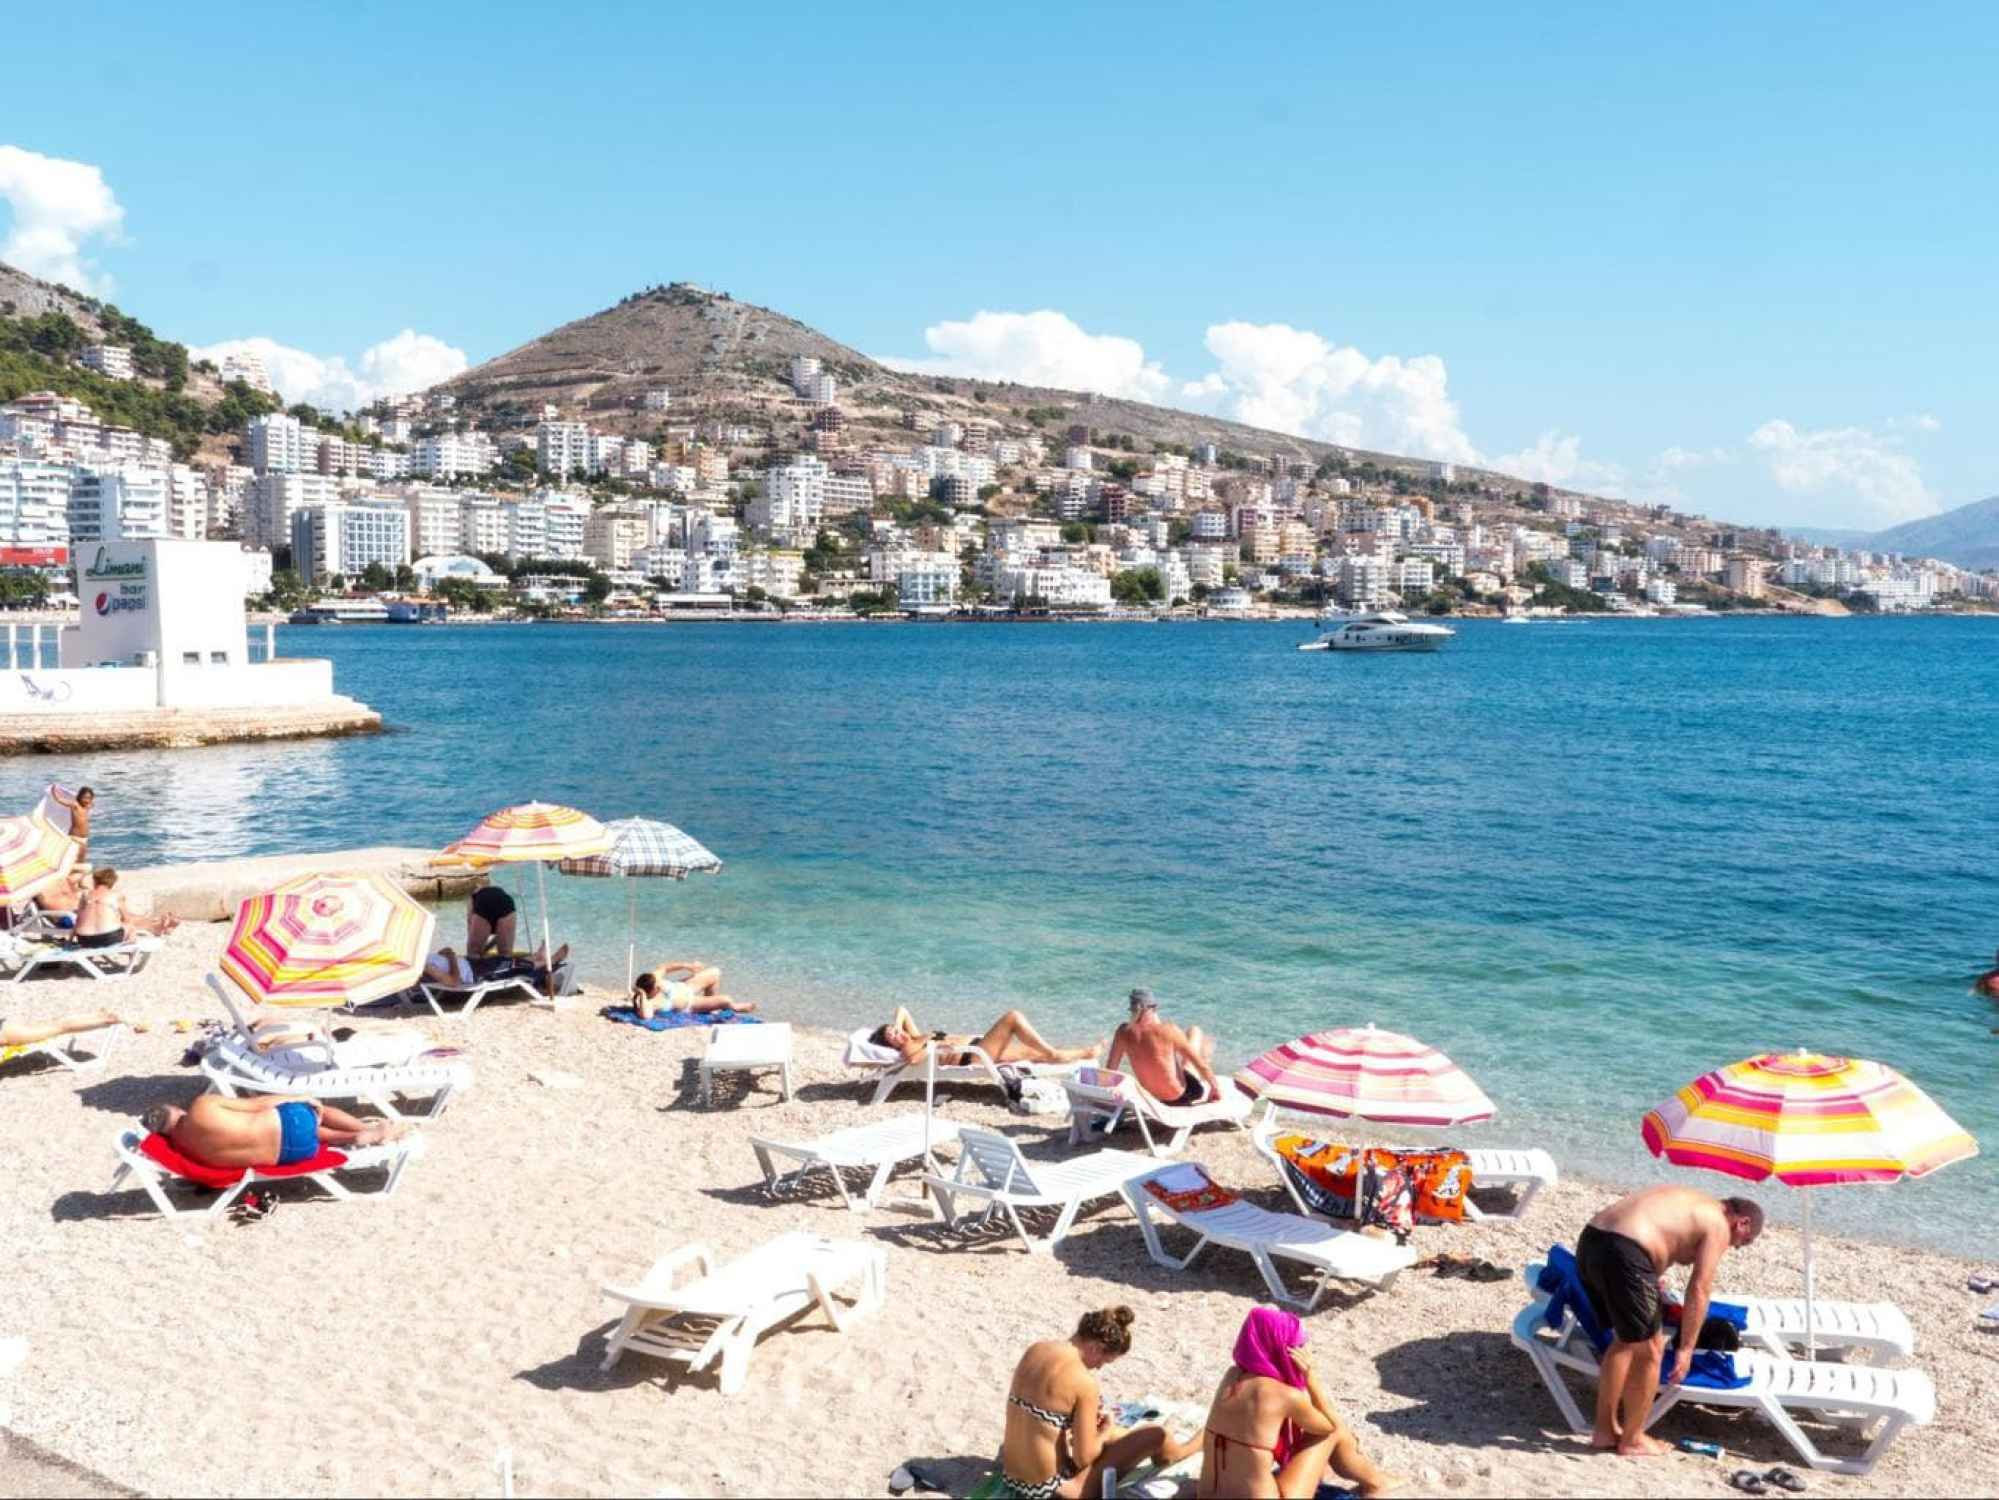 The beach in Saranda, one of the most popular beaches in Albania